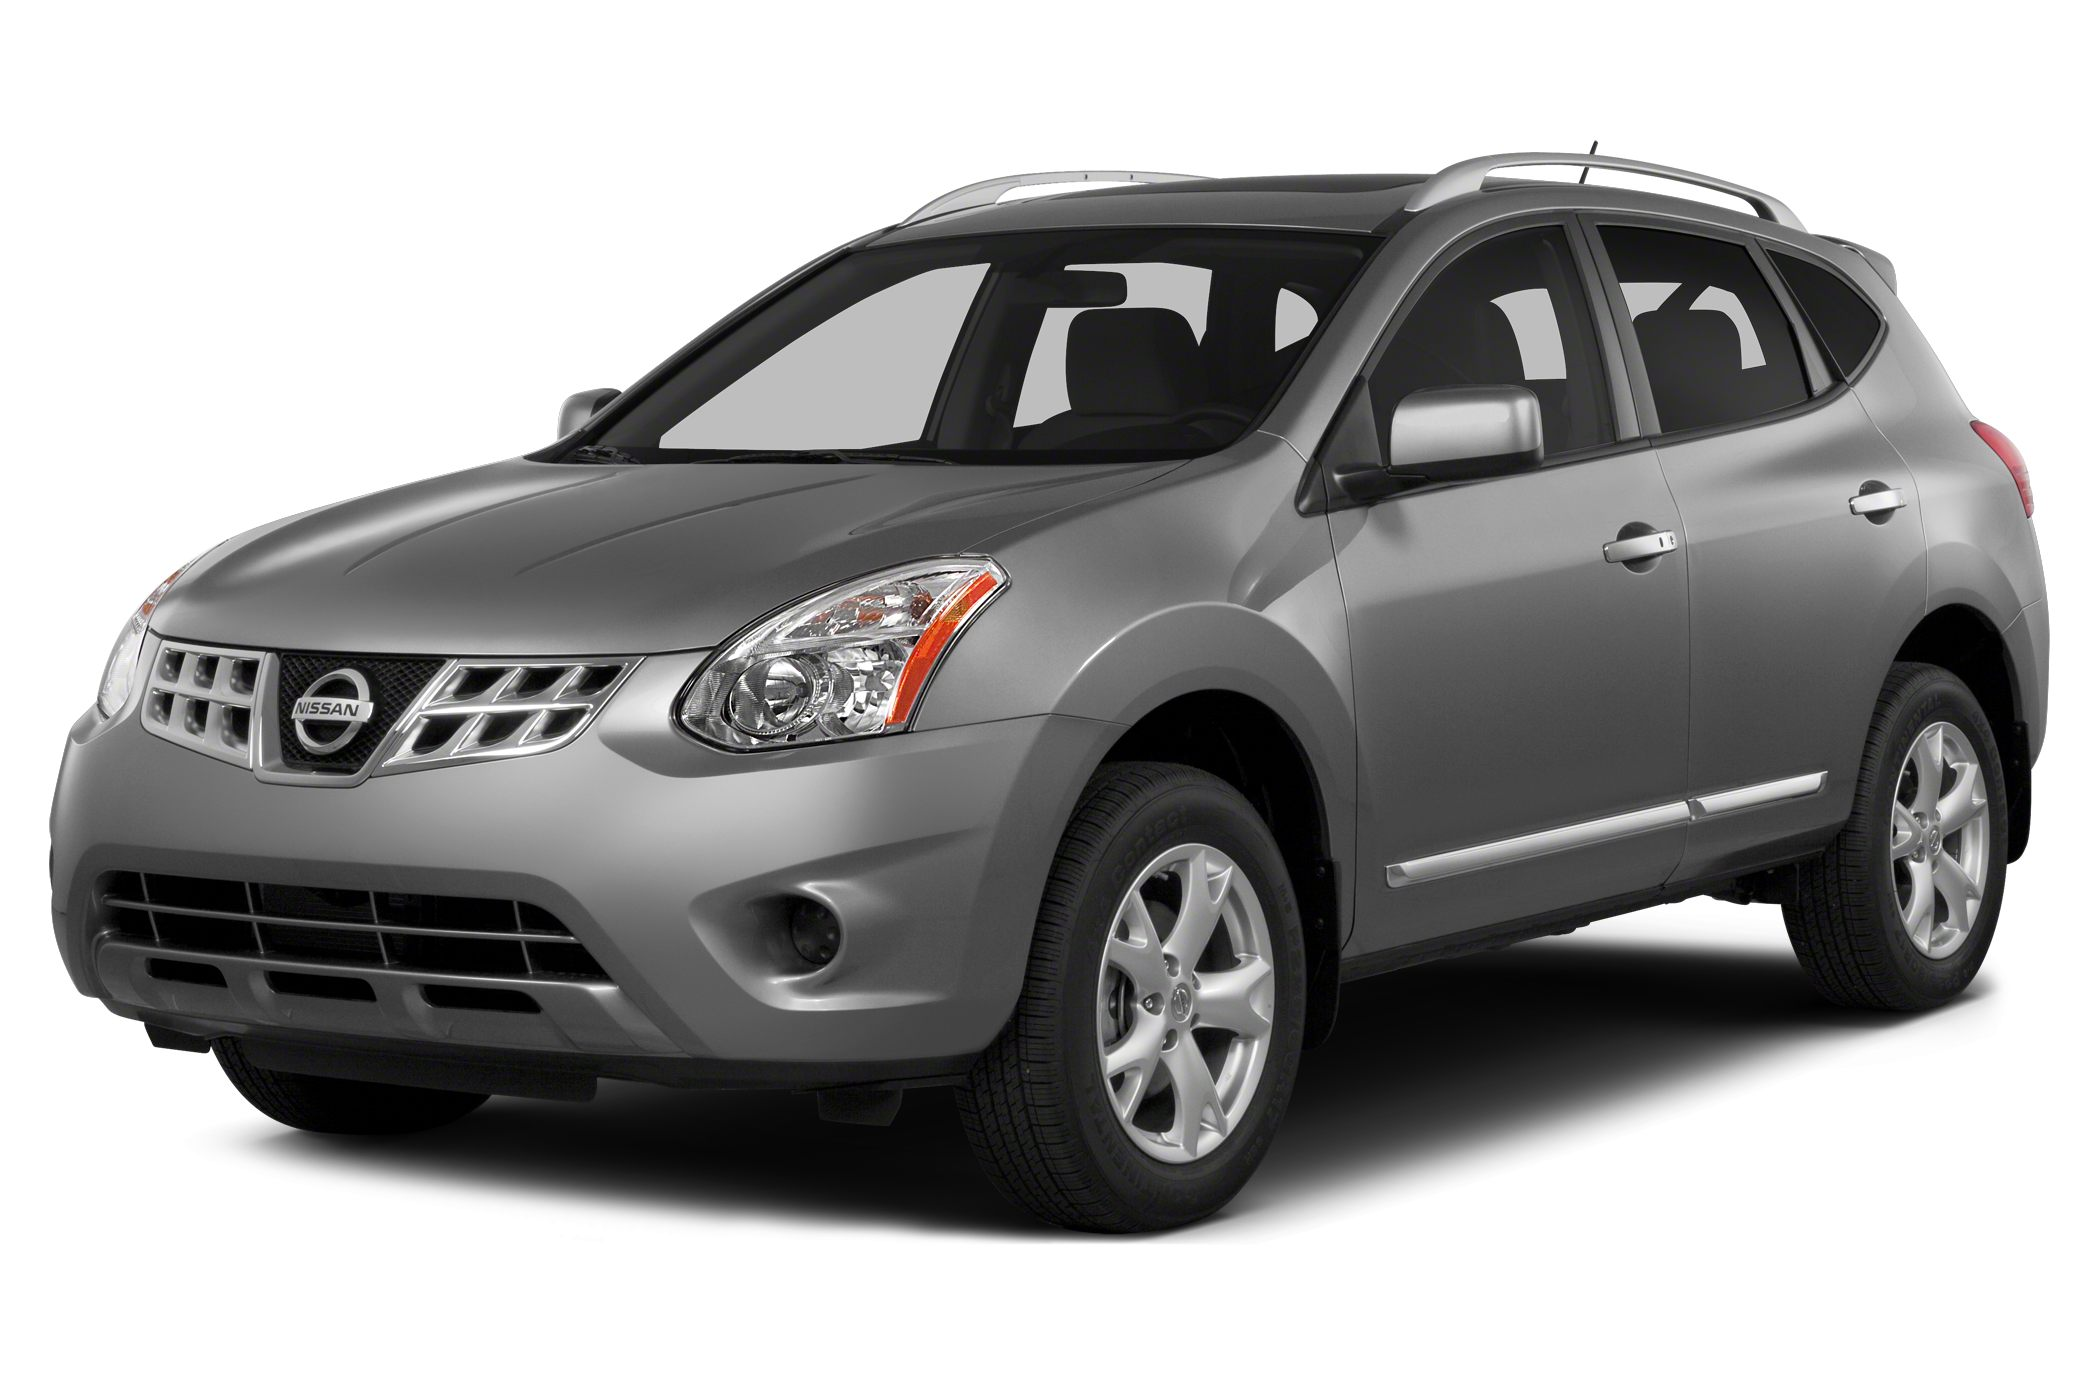 2013 Nissan Rogue S SUV for sale in Bradenton for $18,751 with 11,924 miles.